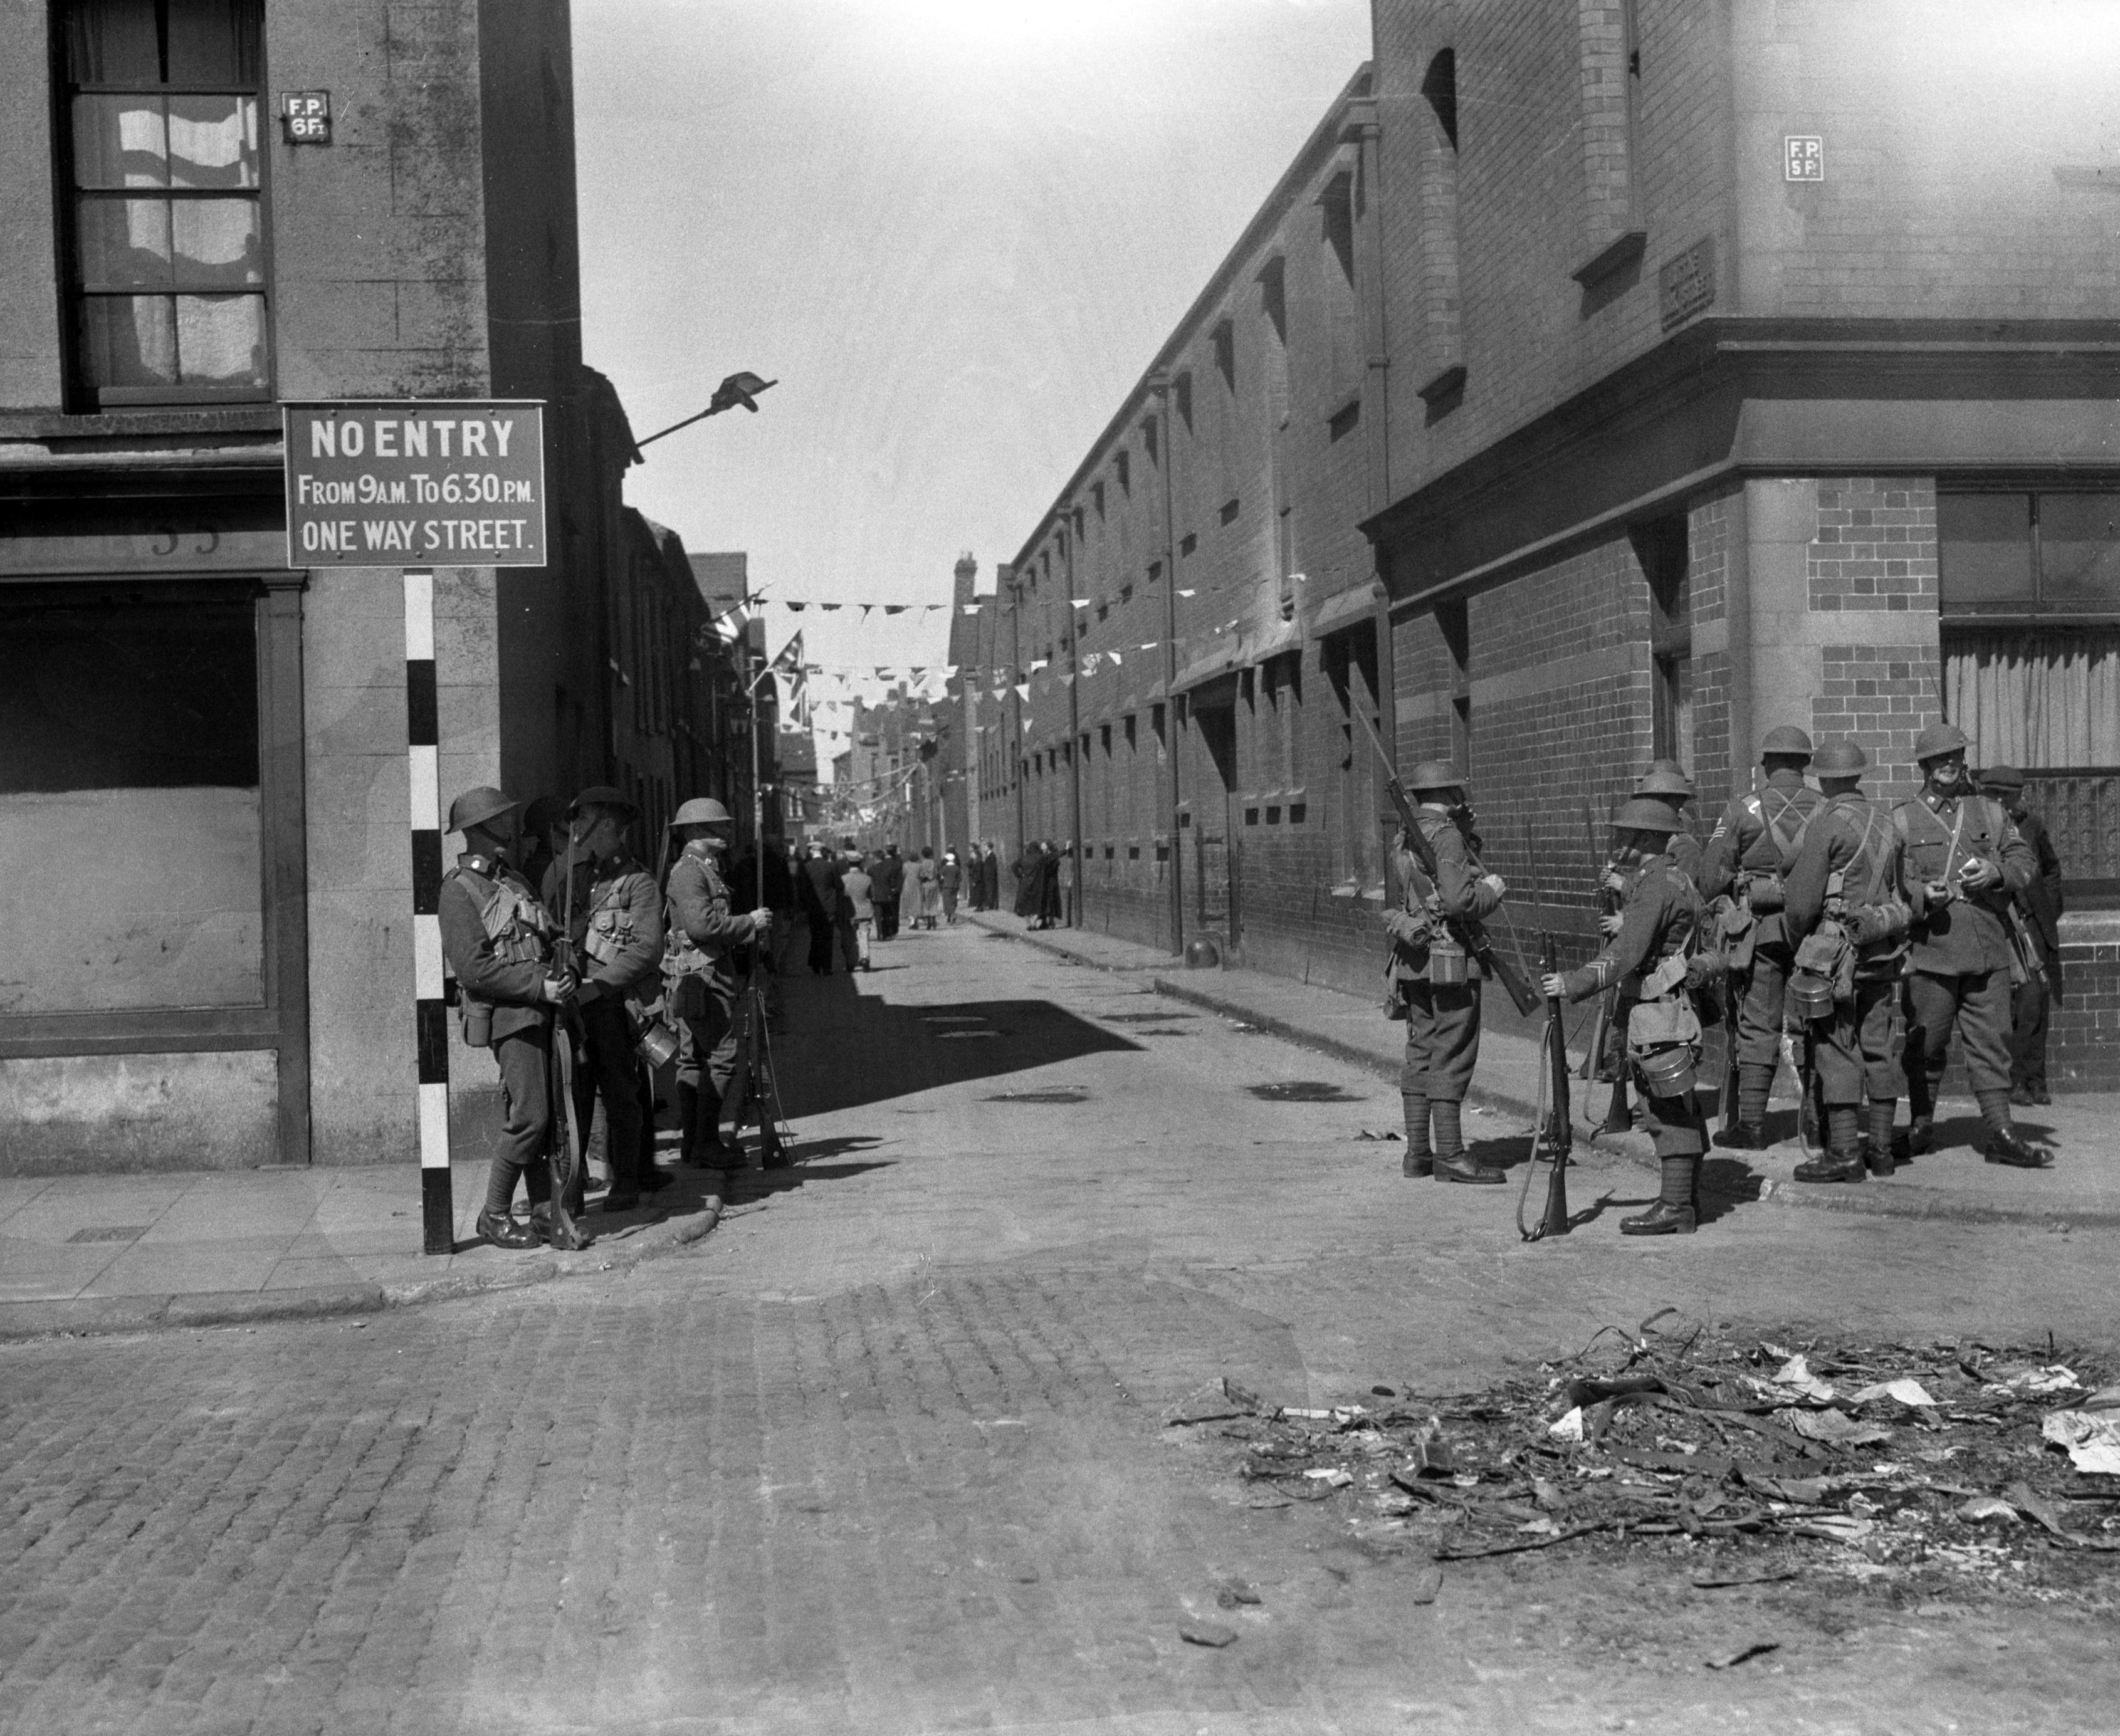 Troops were called out in Belfast, Ireland on July 13, 1935, when rioting between Unionists and Nationalists flared up again. Soldiers on guard with fixed bayonets in York Street. (AP Photo/BEAD)